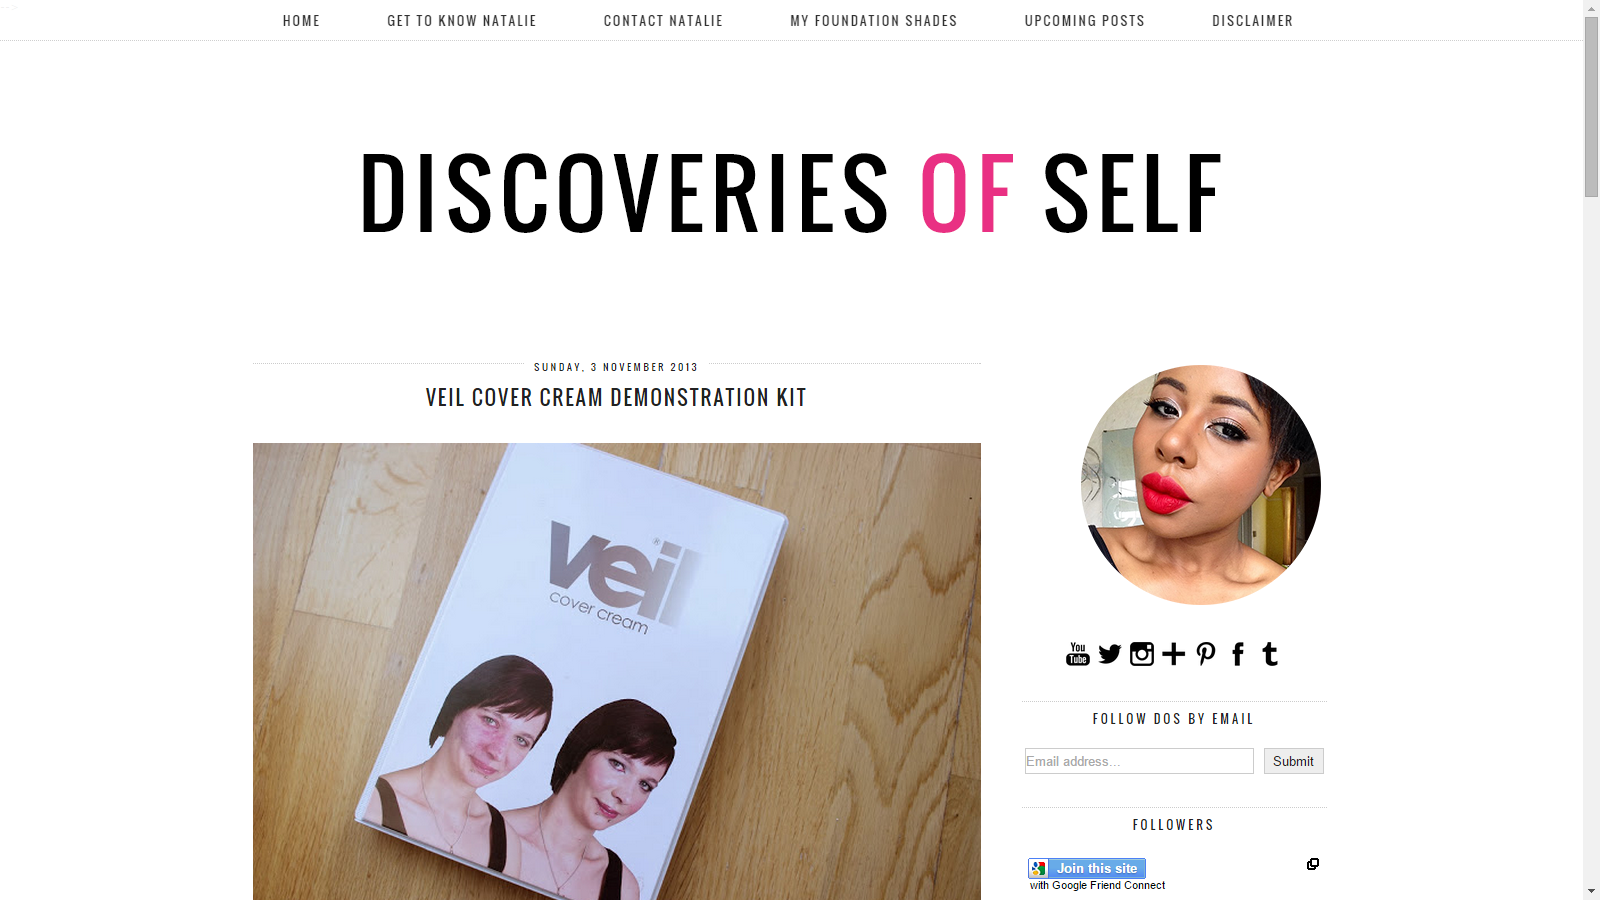 Blast From The Past: The Veil Demonstration Kit Featured On Discoveries Of Self